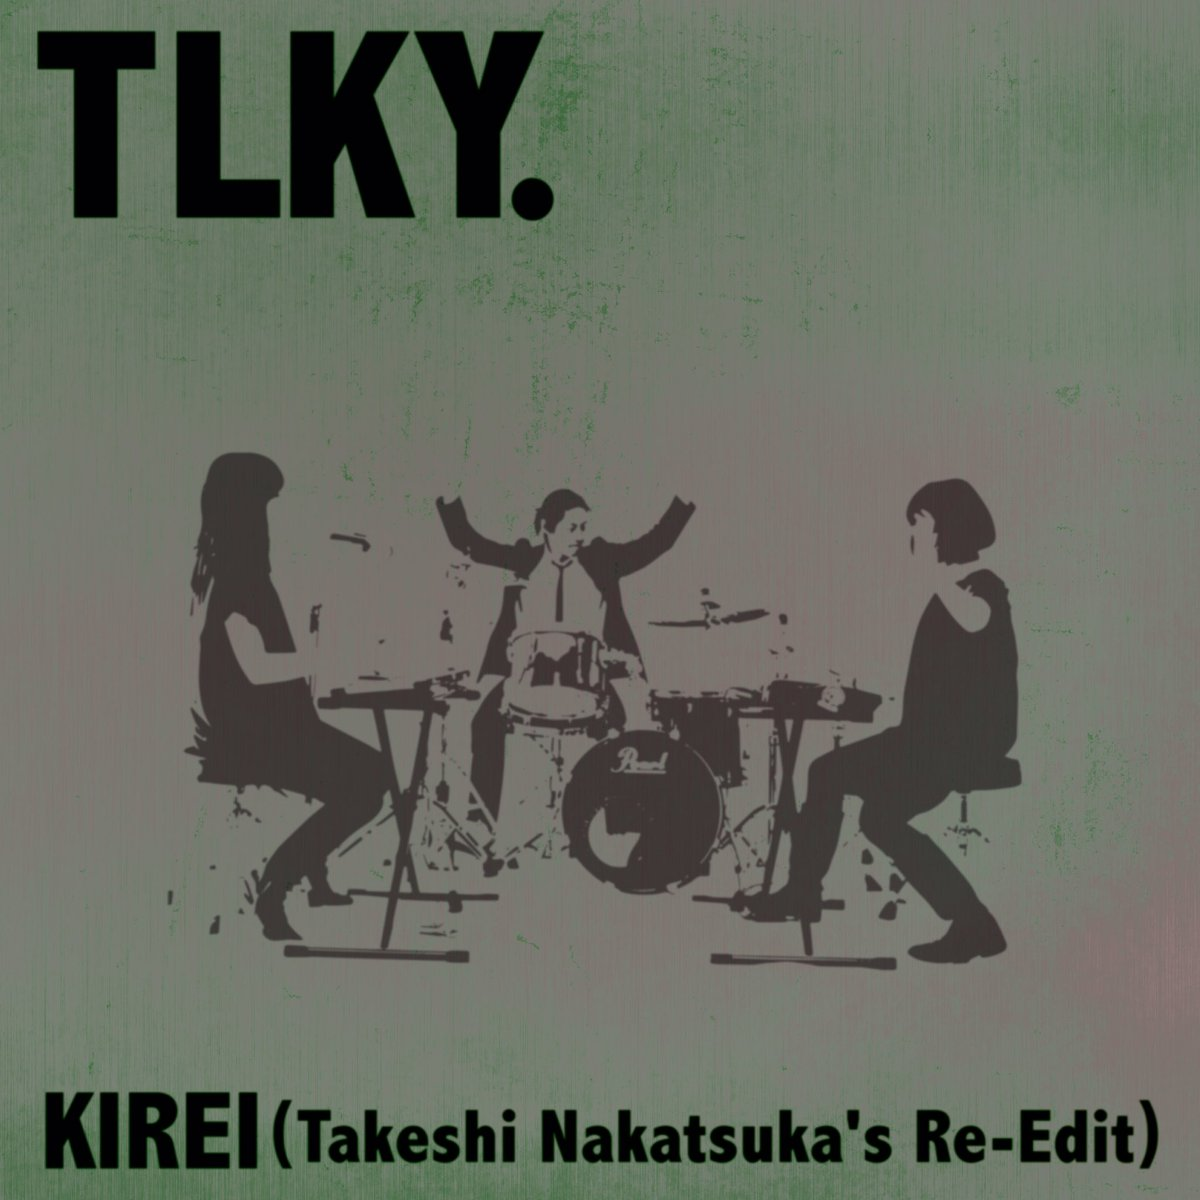 「KIREI (Takeshi Nakatsuka's Re-Edit)」